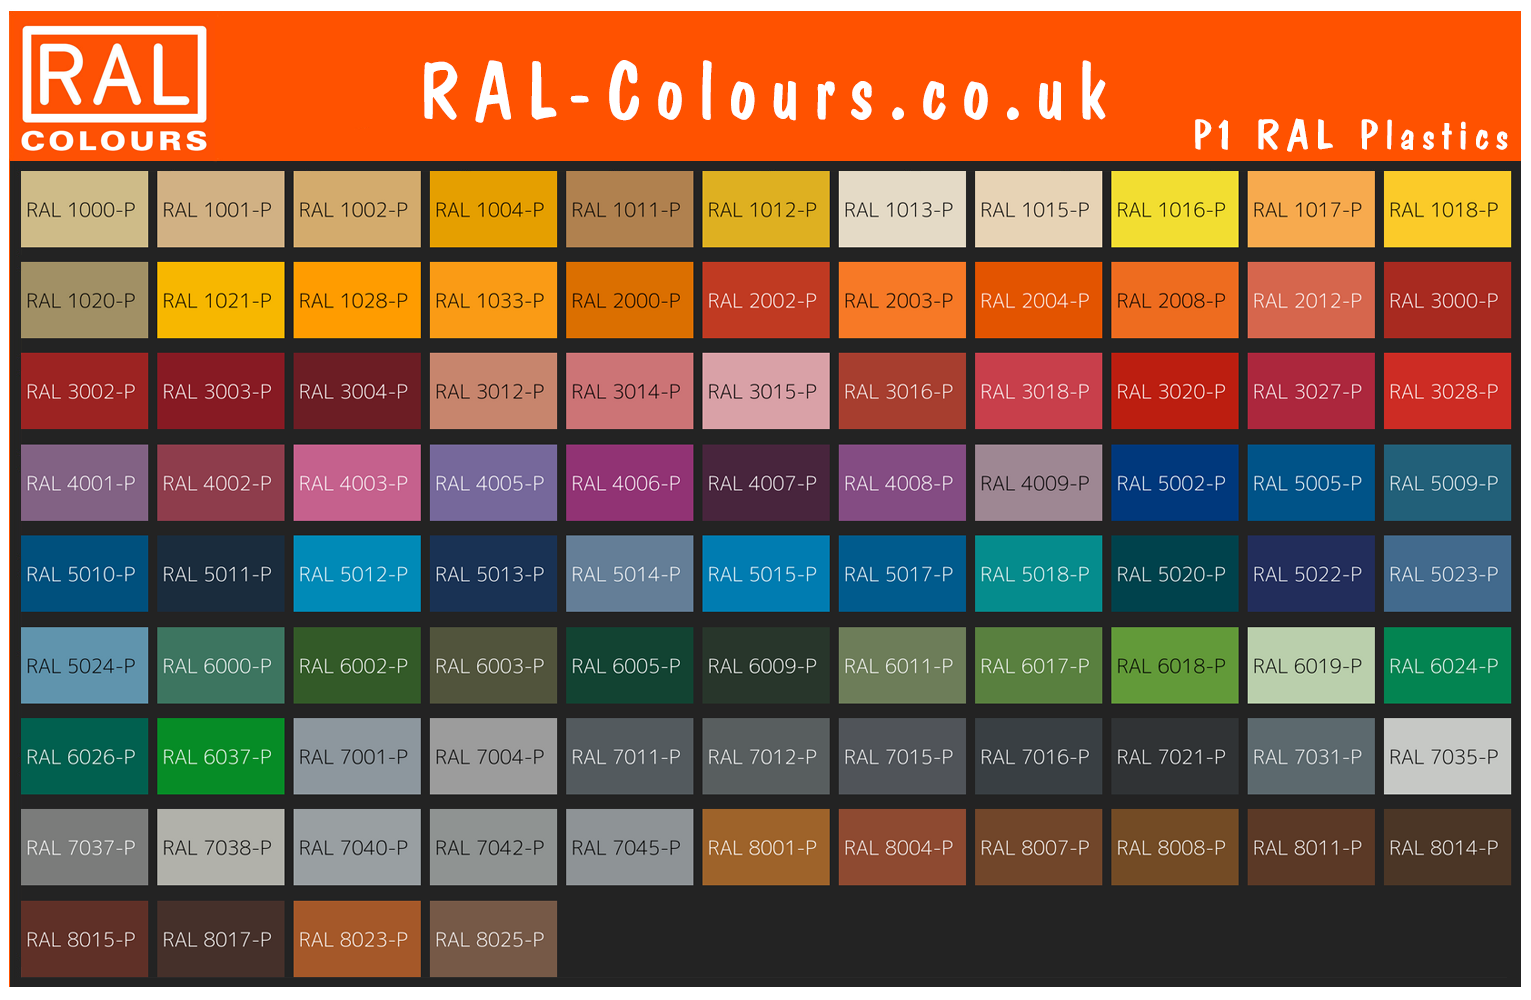 RAL Plastic P1 colour chart with names and RAL to RGB / CMYK conversion info